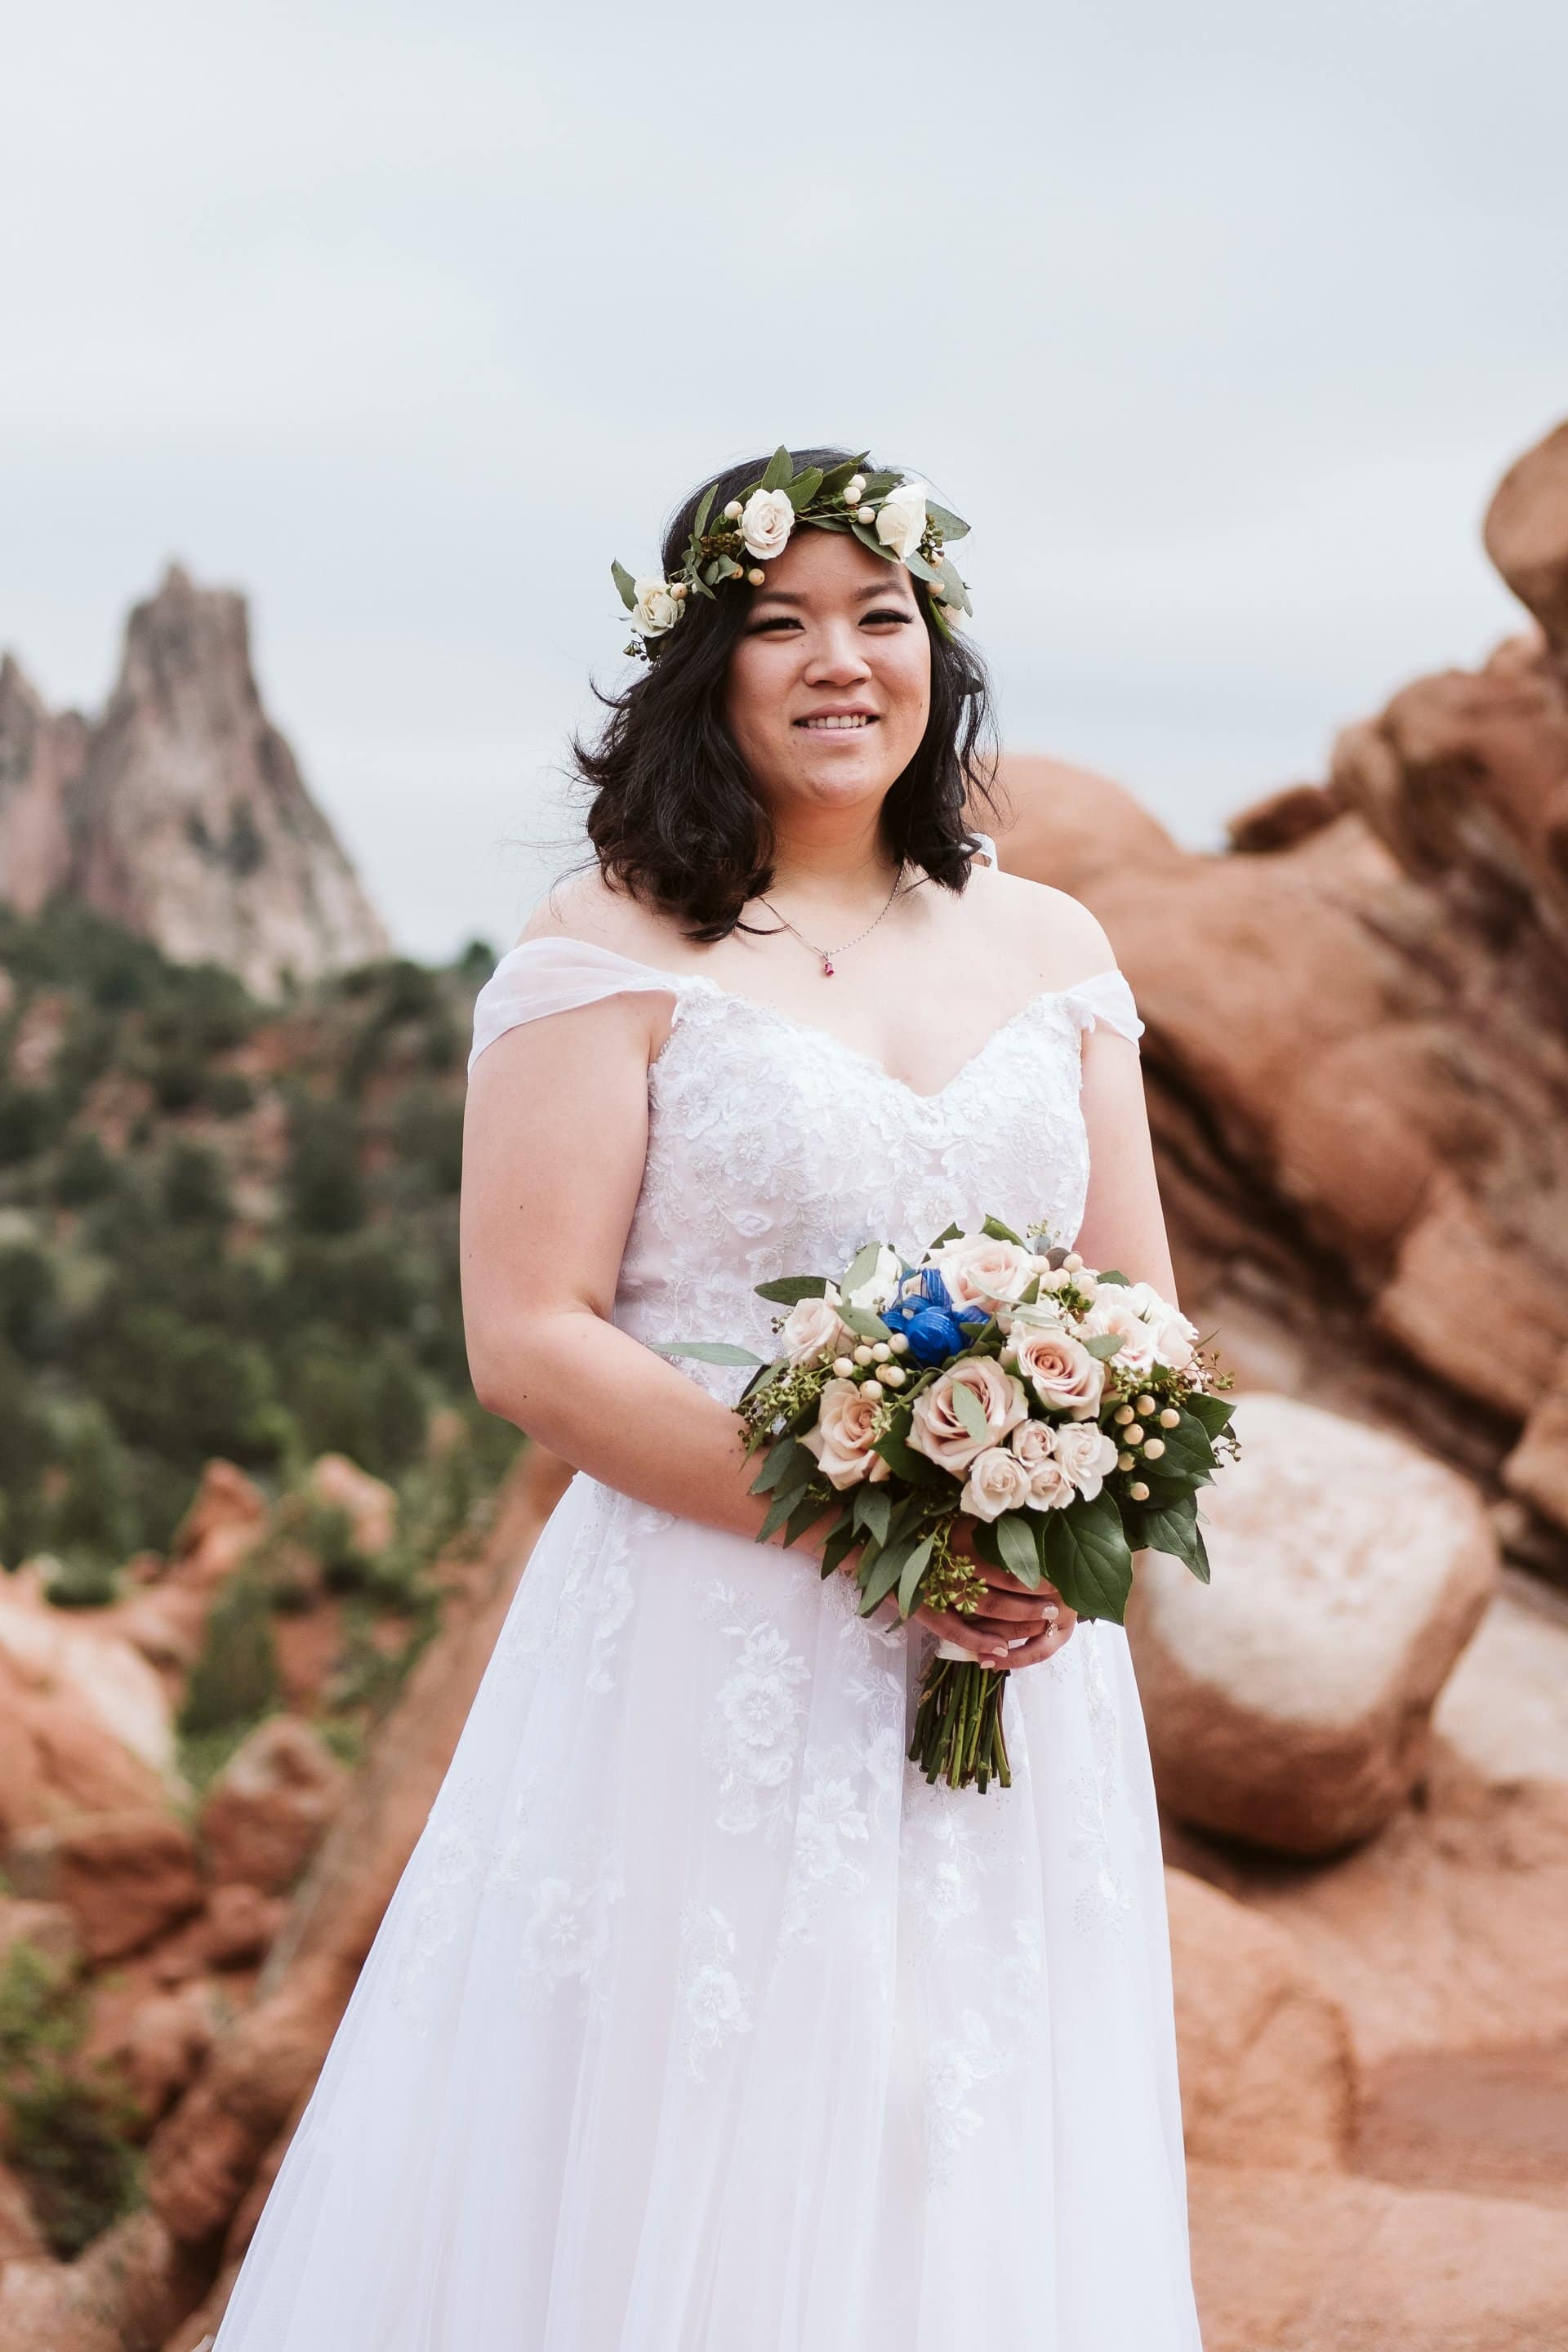 Bride portrait at Garden of the Gods in Colorado Springs, wedding bouquet with pale pink and yellow sandy dusty colors